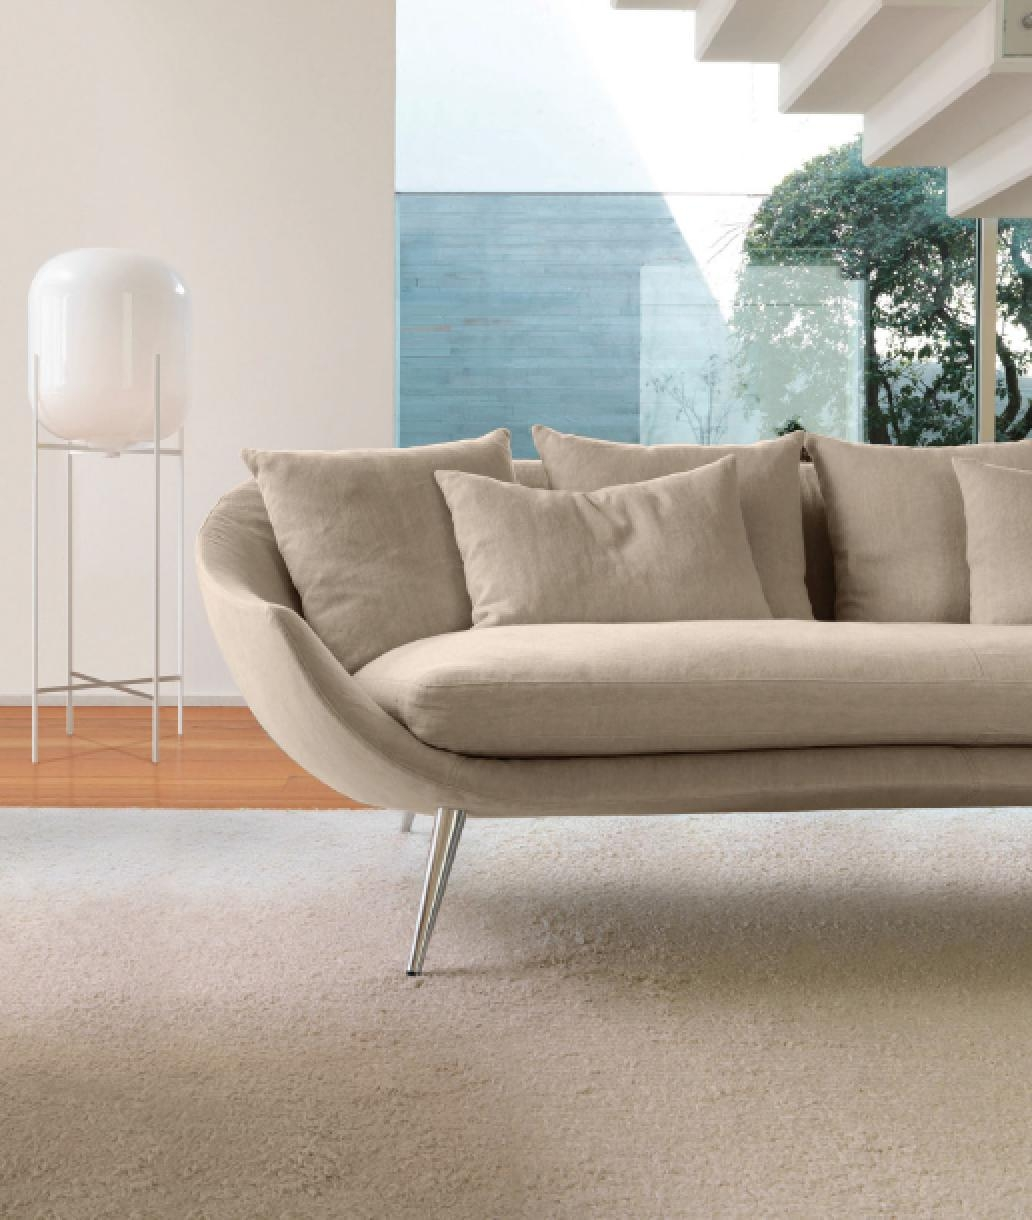 Cantoni Sofa 65 With Cantoni Sofa | Jinanhongyu With Cantoni Sofas (Image 10 of 20)